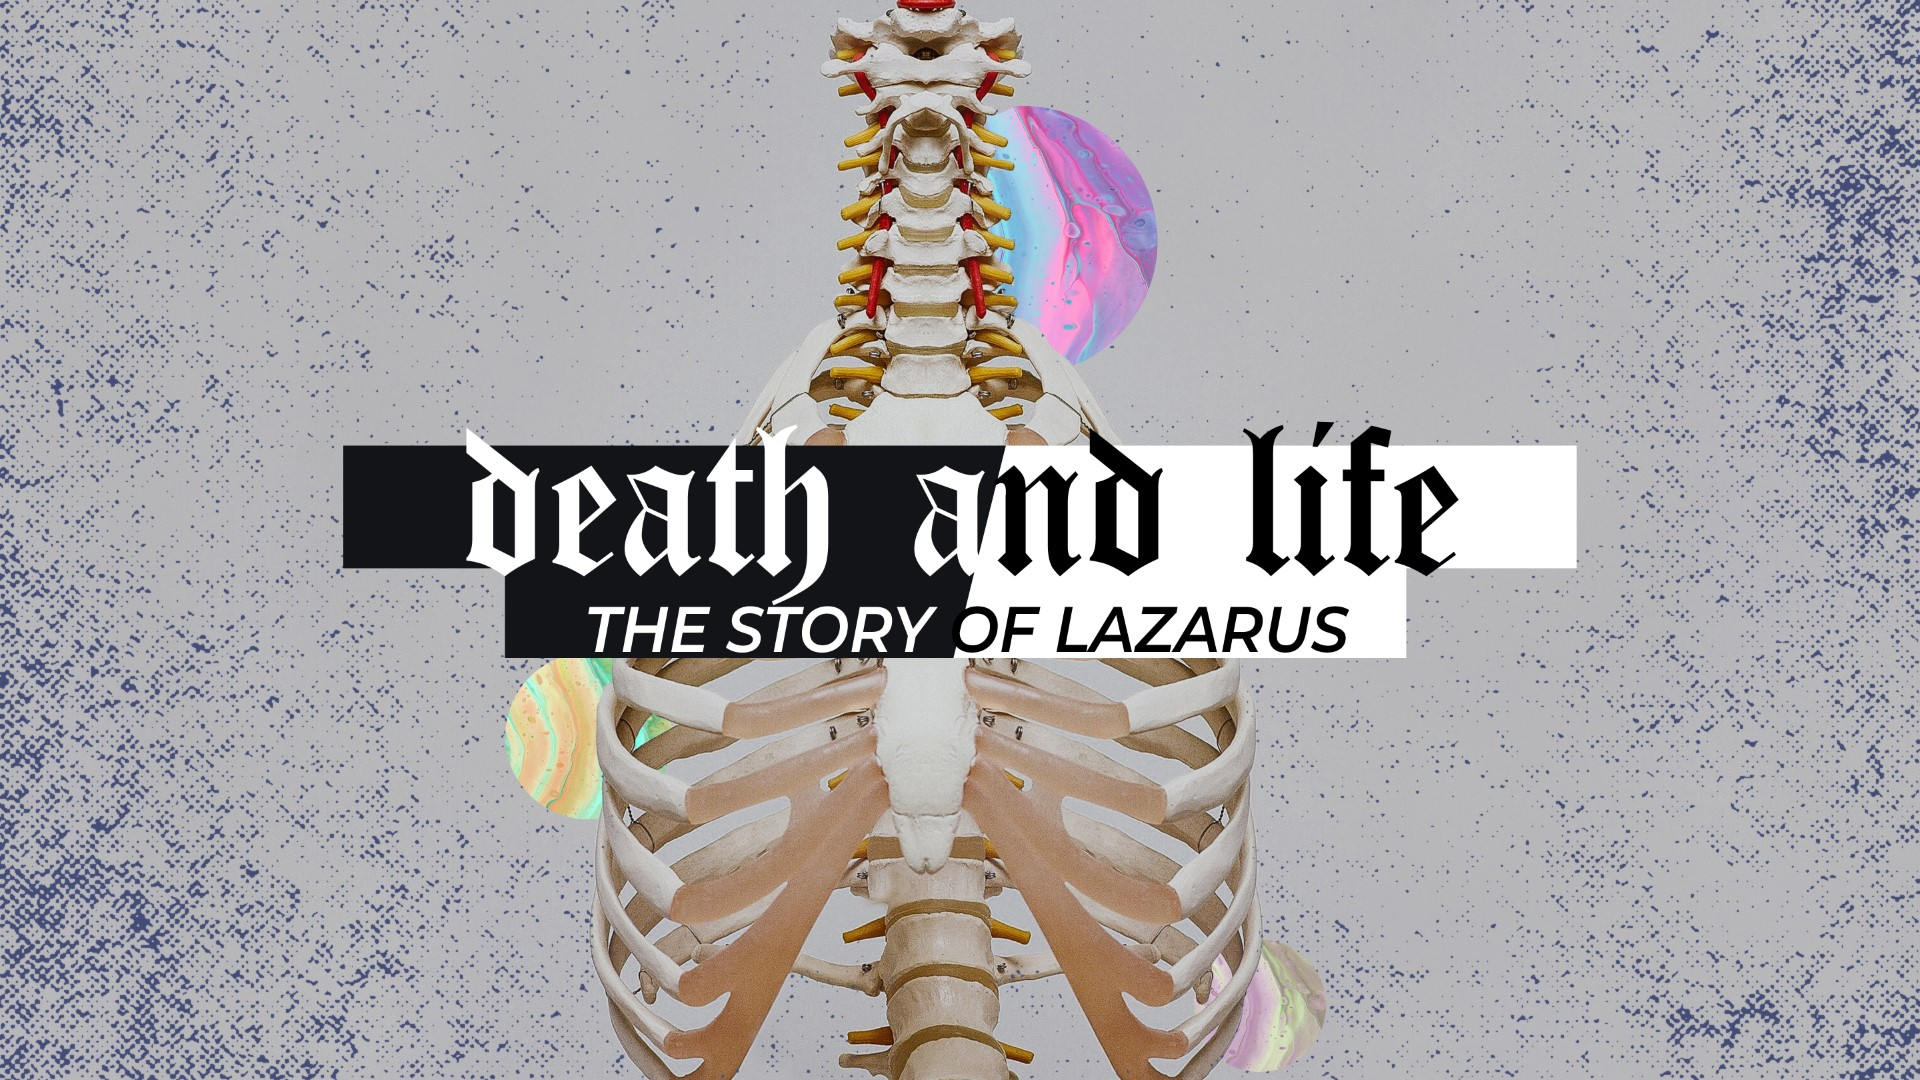 Death and Life - The Story of Lazarus